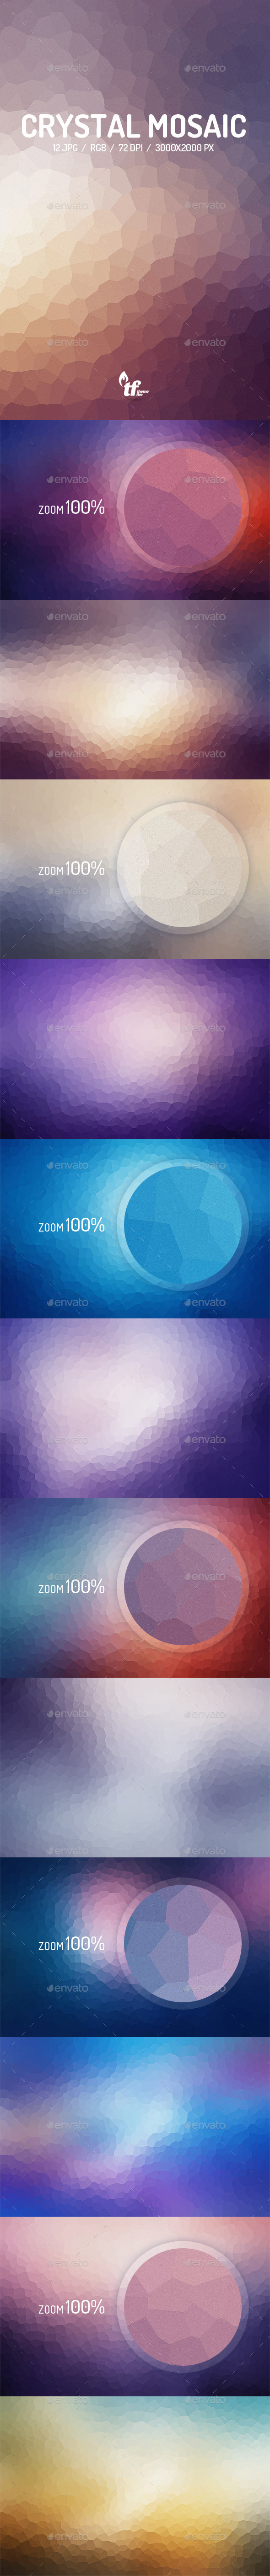 GraphicRiver Crystal Mosaic Backgrounds 8791095